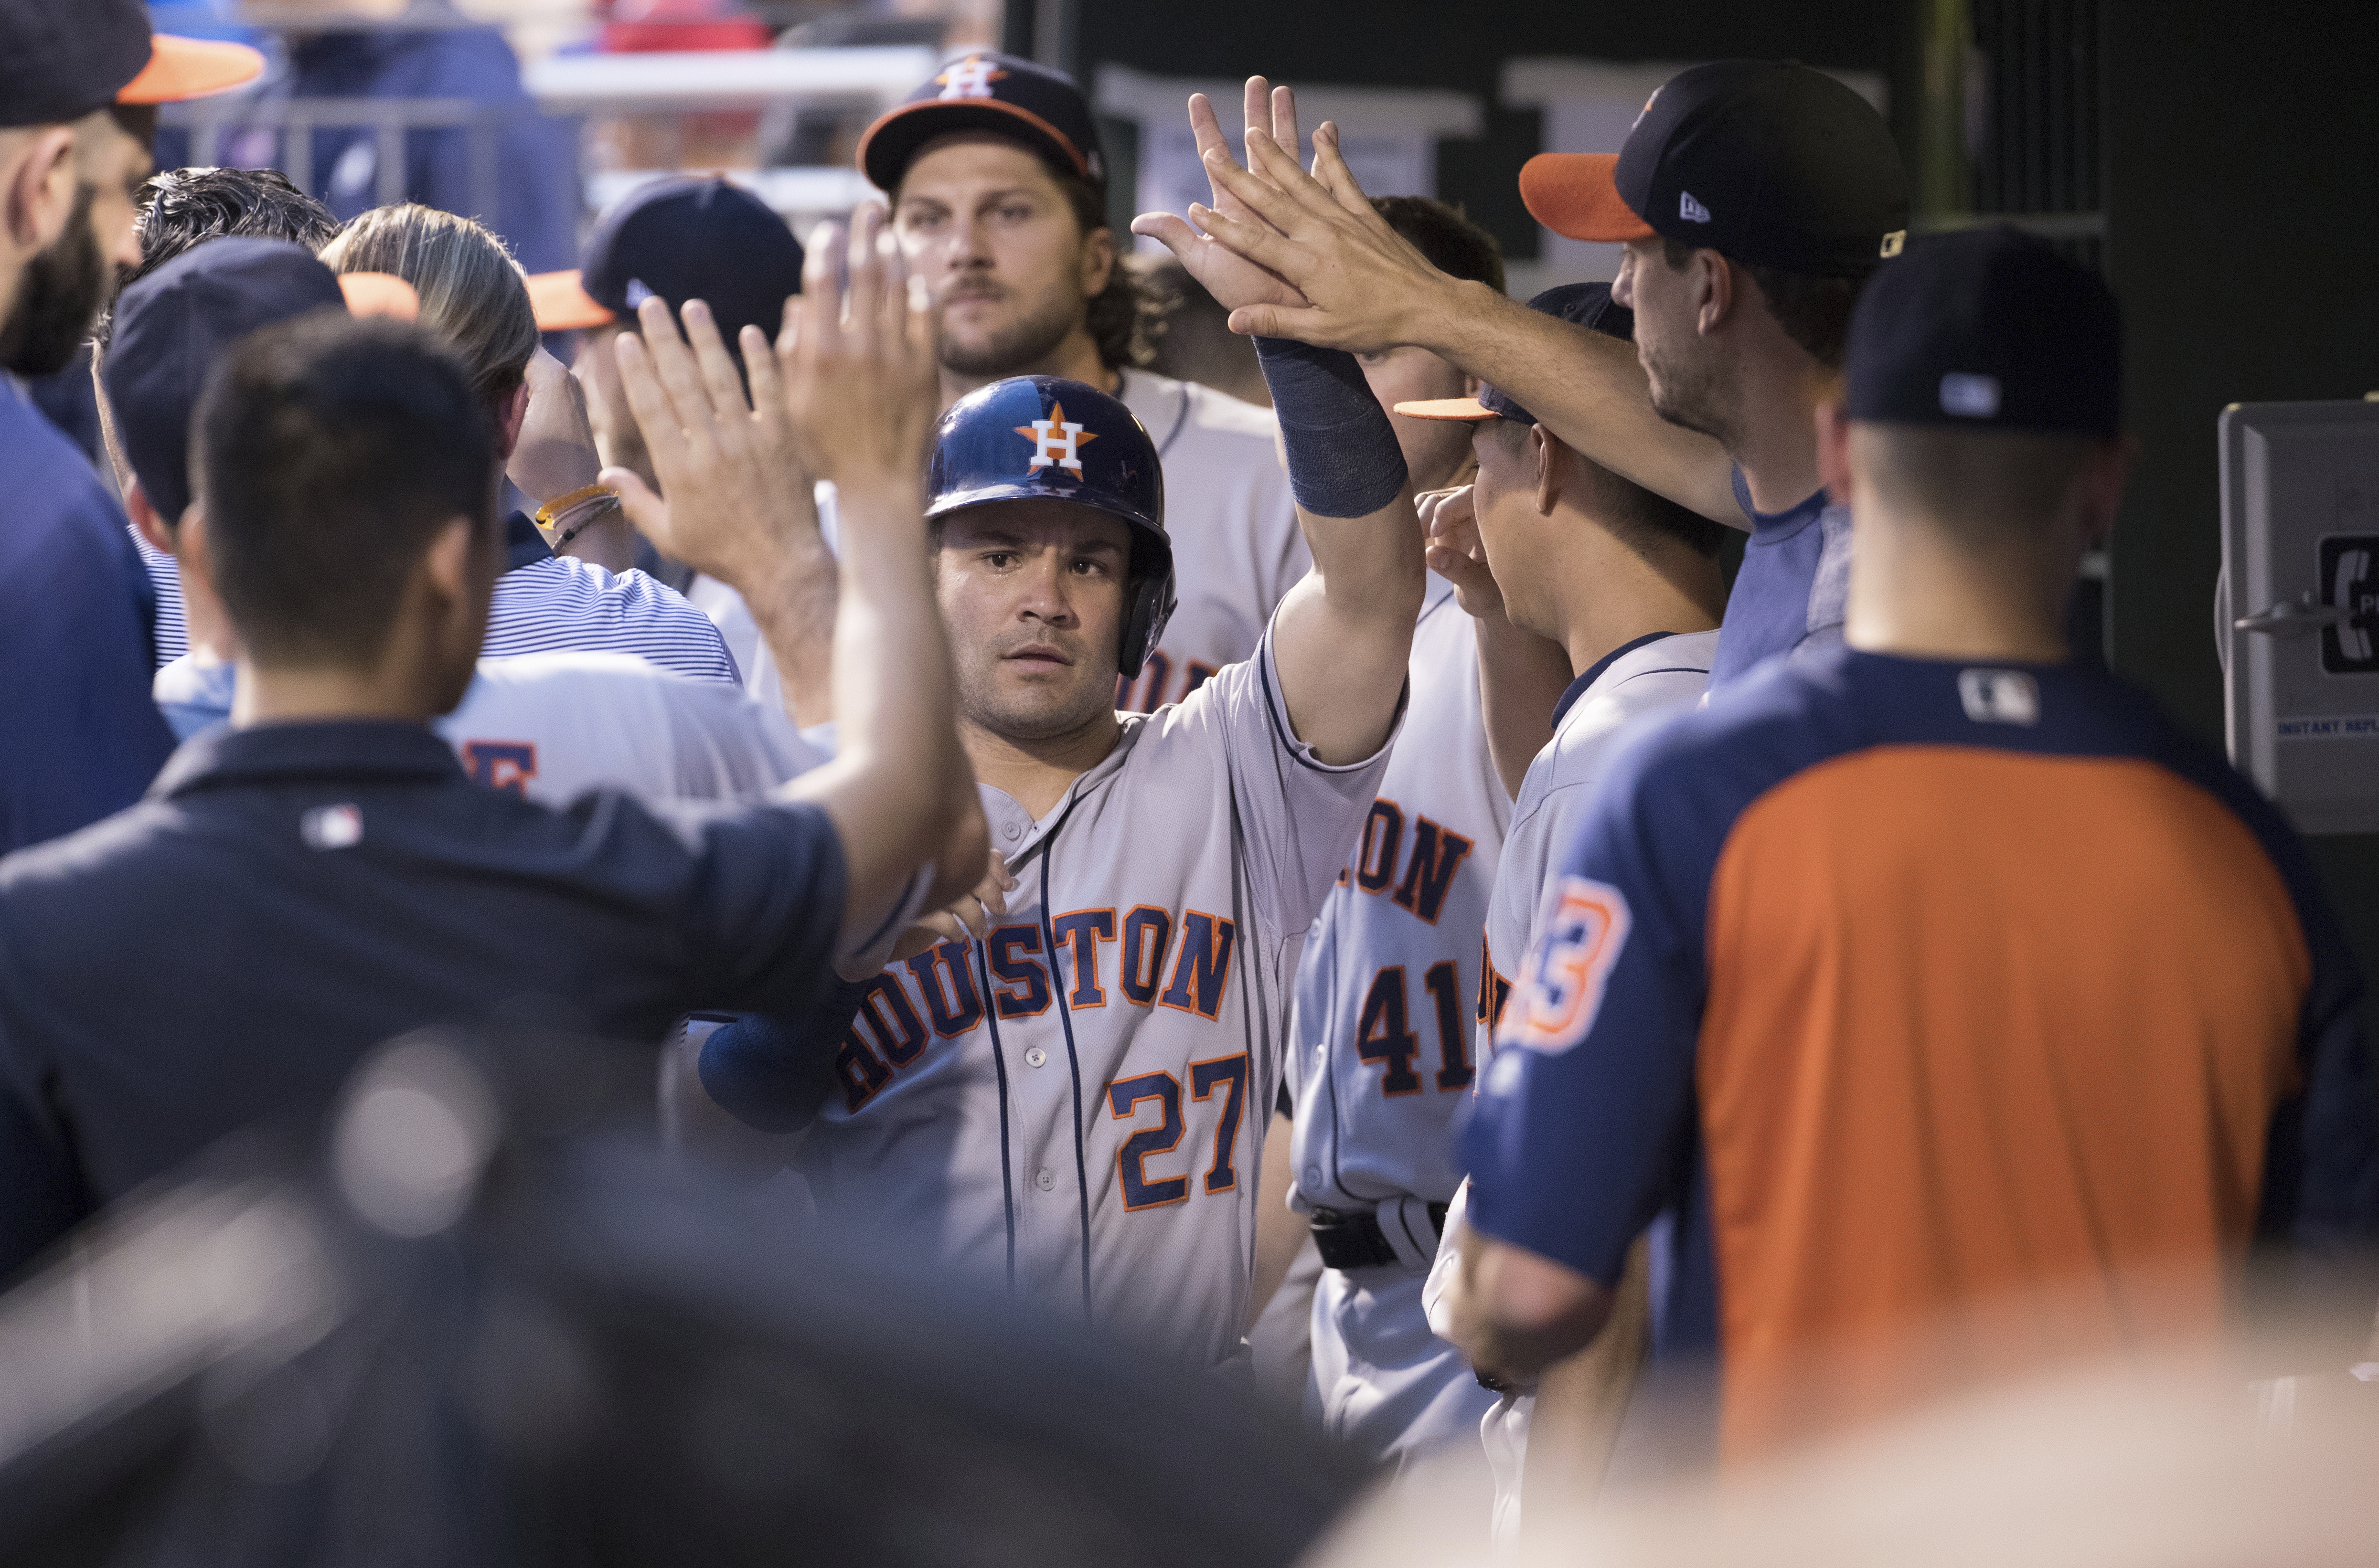 Houston second baseman Jose Altuve gets high fives after scoring one of his three runs Monday. He had four of the Astros´ 18 hits. (AP Photo/Chris Szagola)